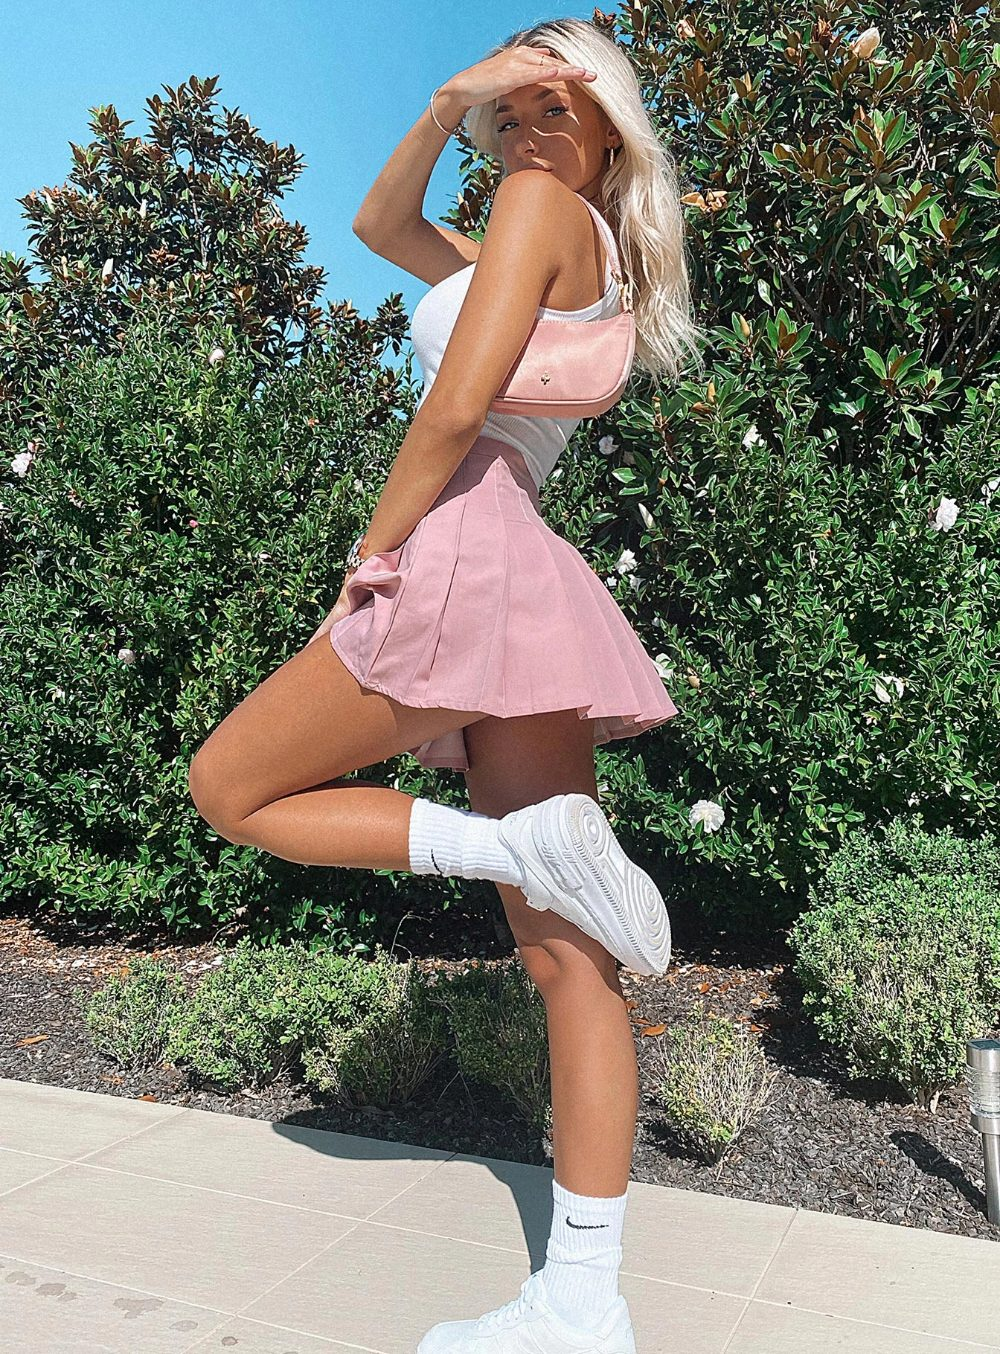 Pink tennis skirt outfits